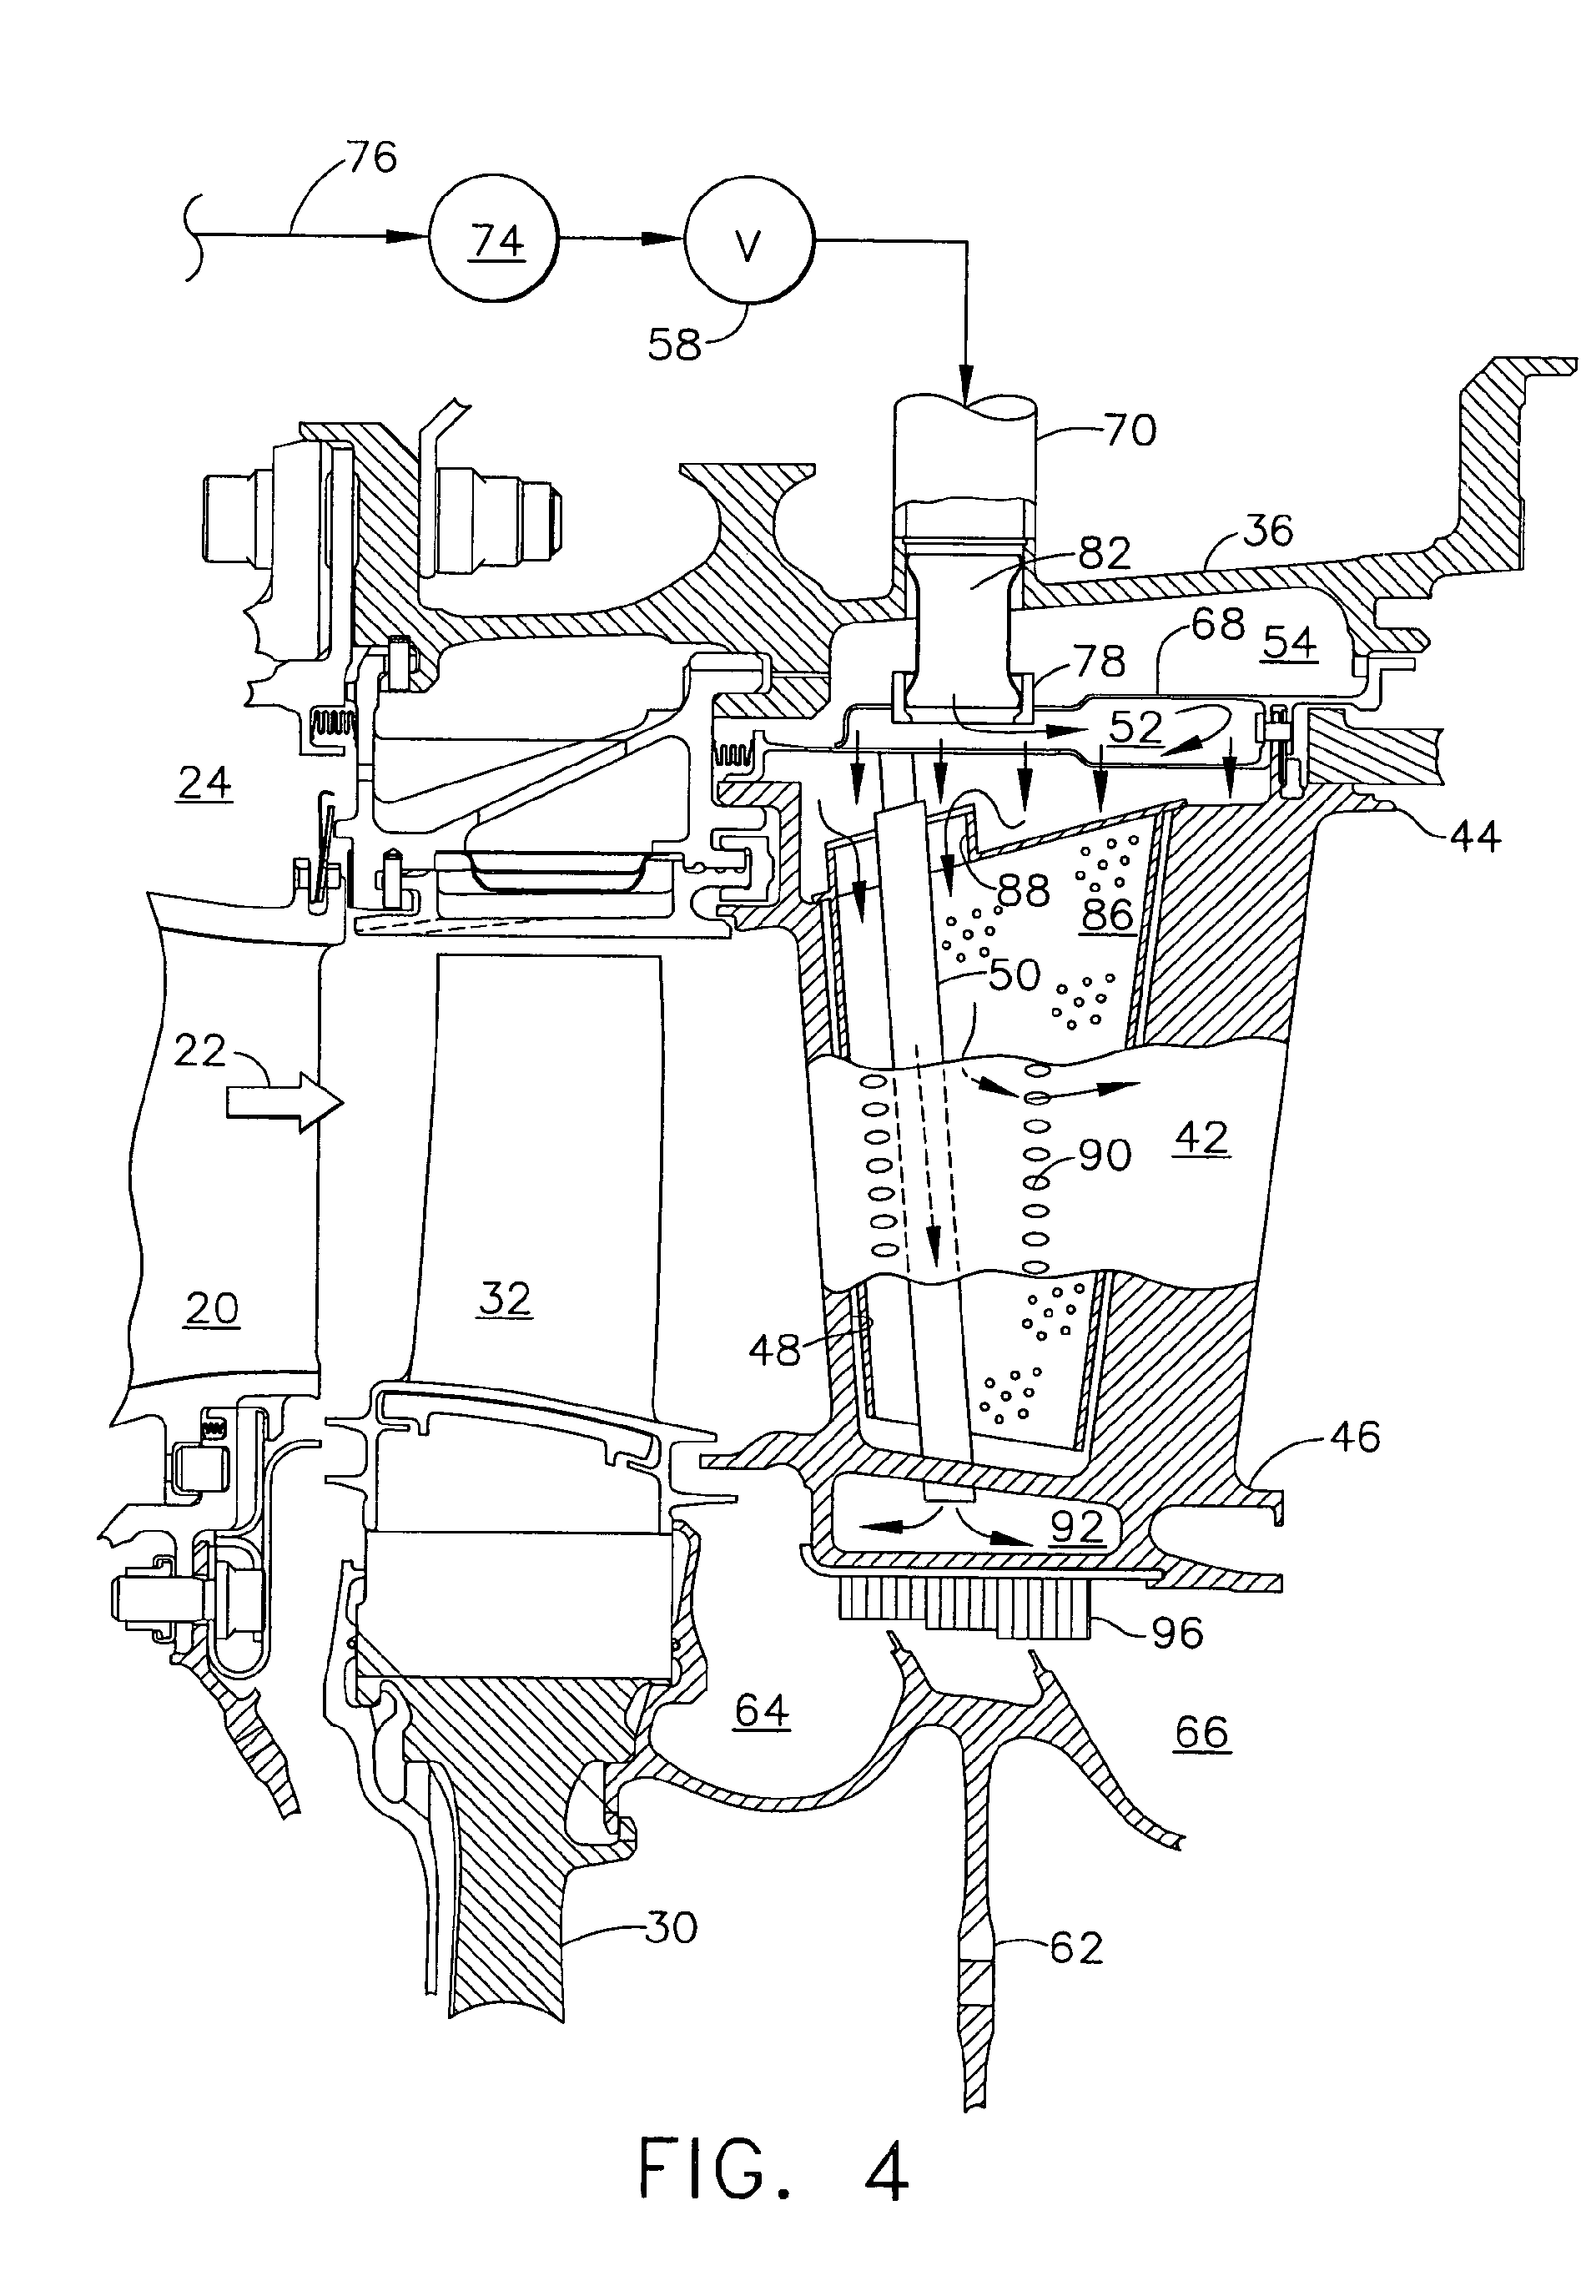 Patent EP A1 Gas turbine engine with modulated flow